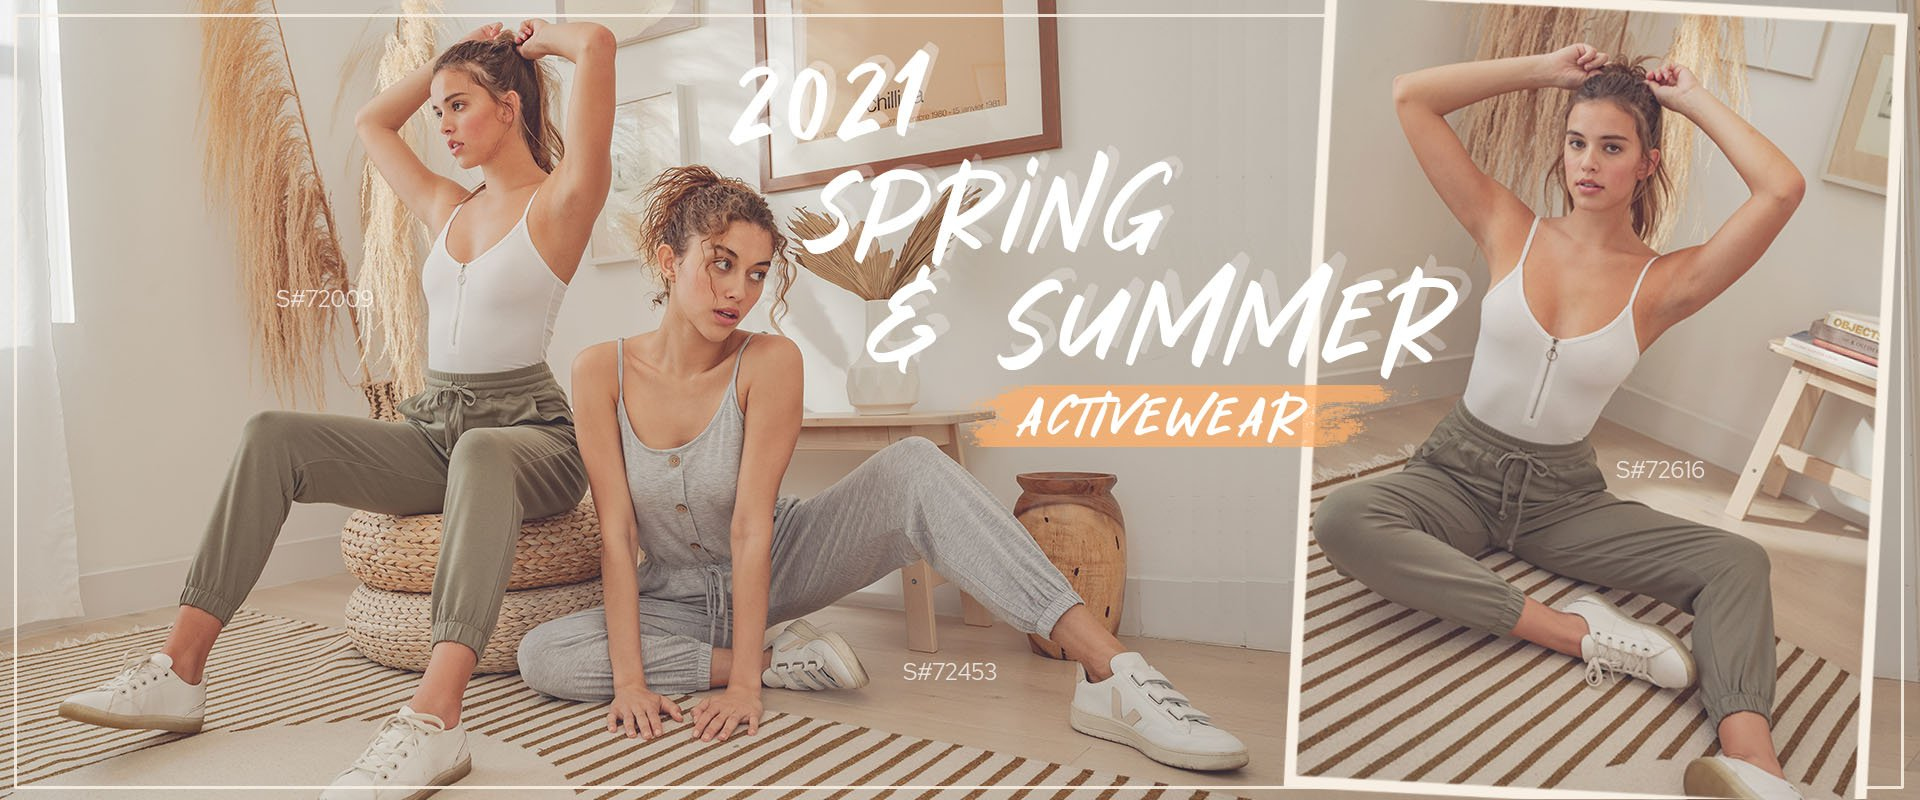 SPRING/SUMMER 2021 ACTIVEWEAR